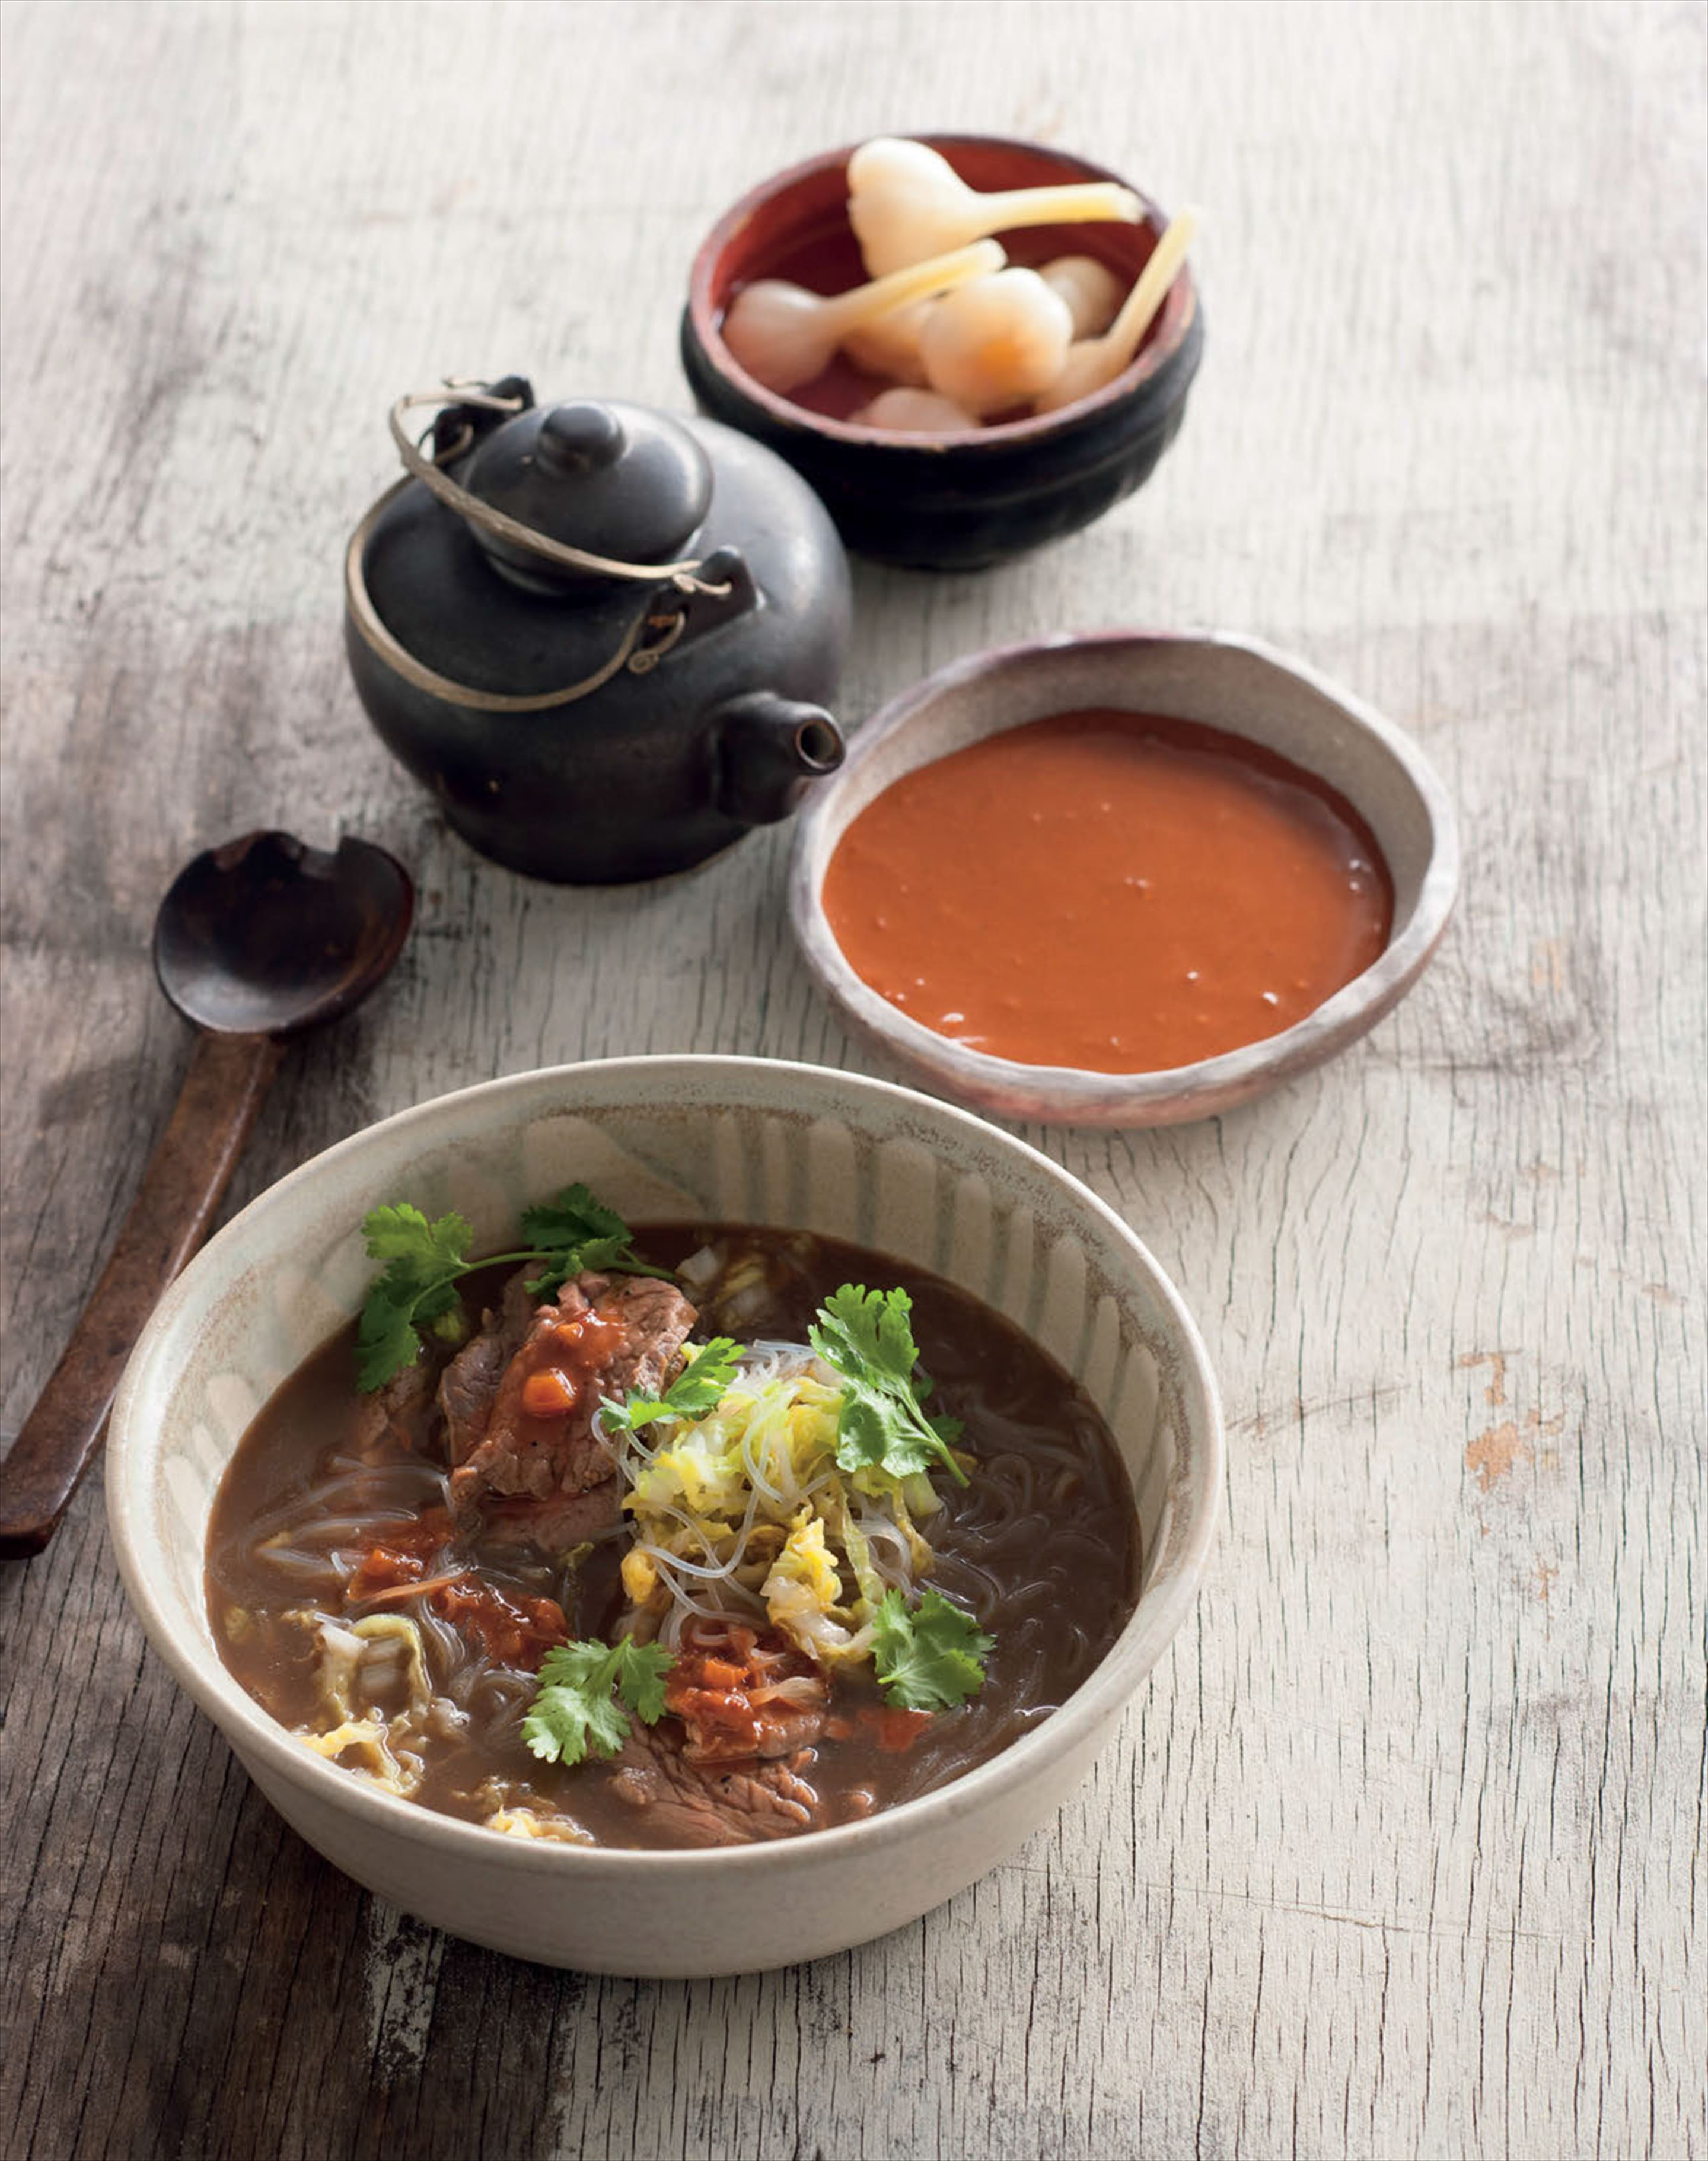 Beef and fermented tofu soup